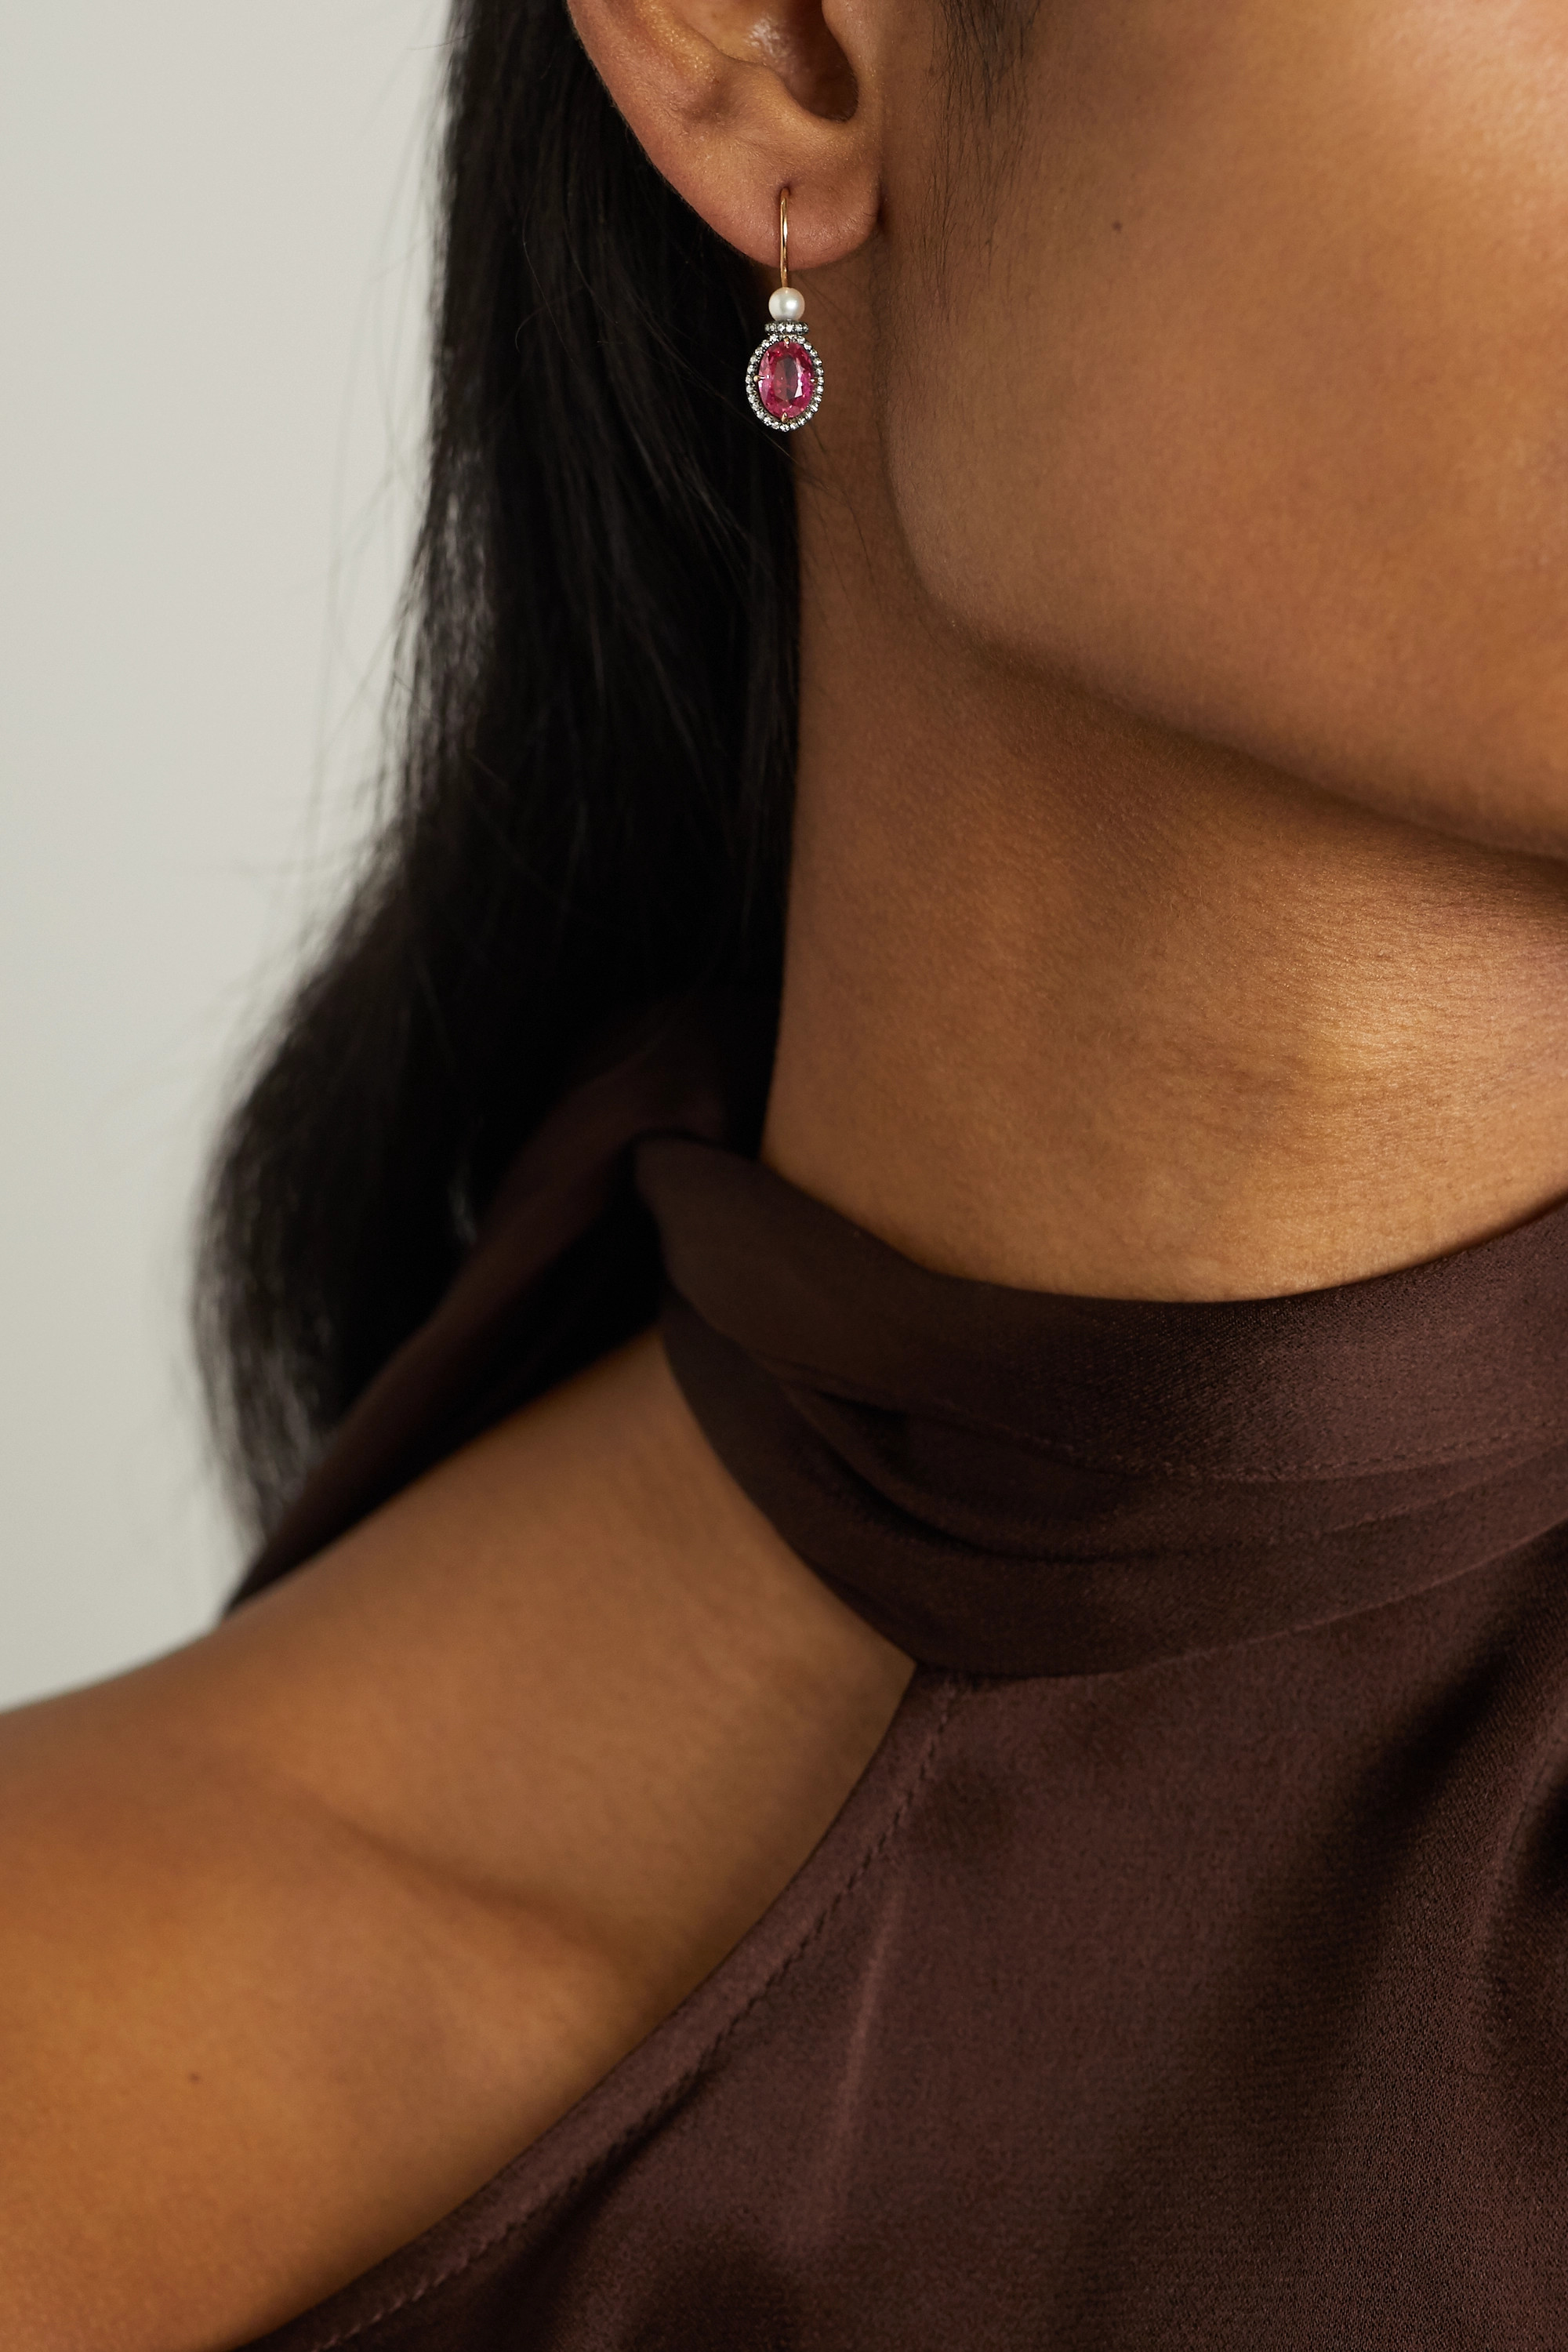 Nadia Morgenthaler + NET SUSTAIN 18-karat recycled red gold and blackened sterling silver multi-stone earrings